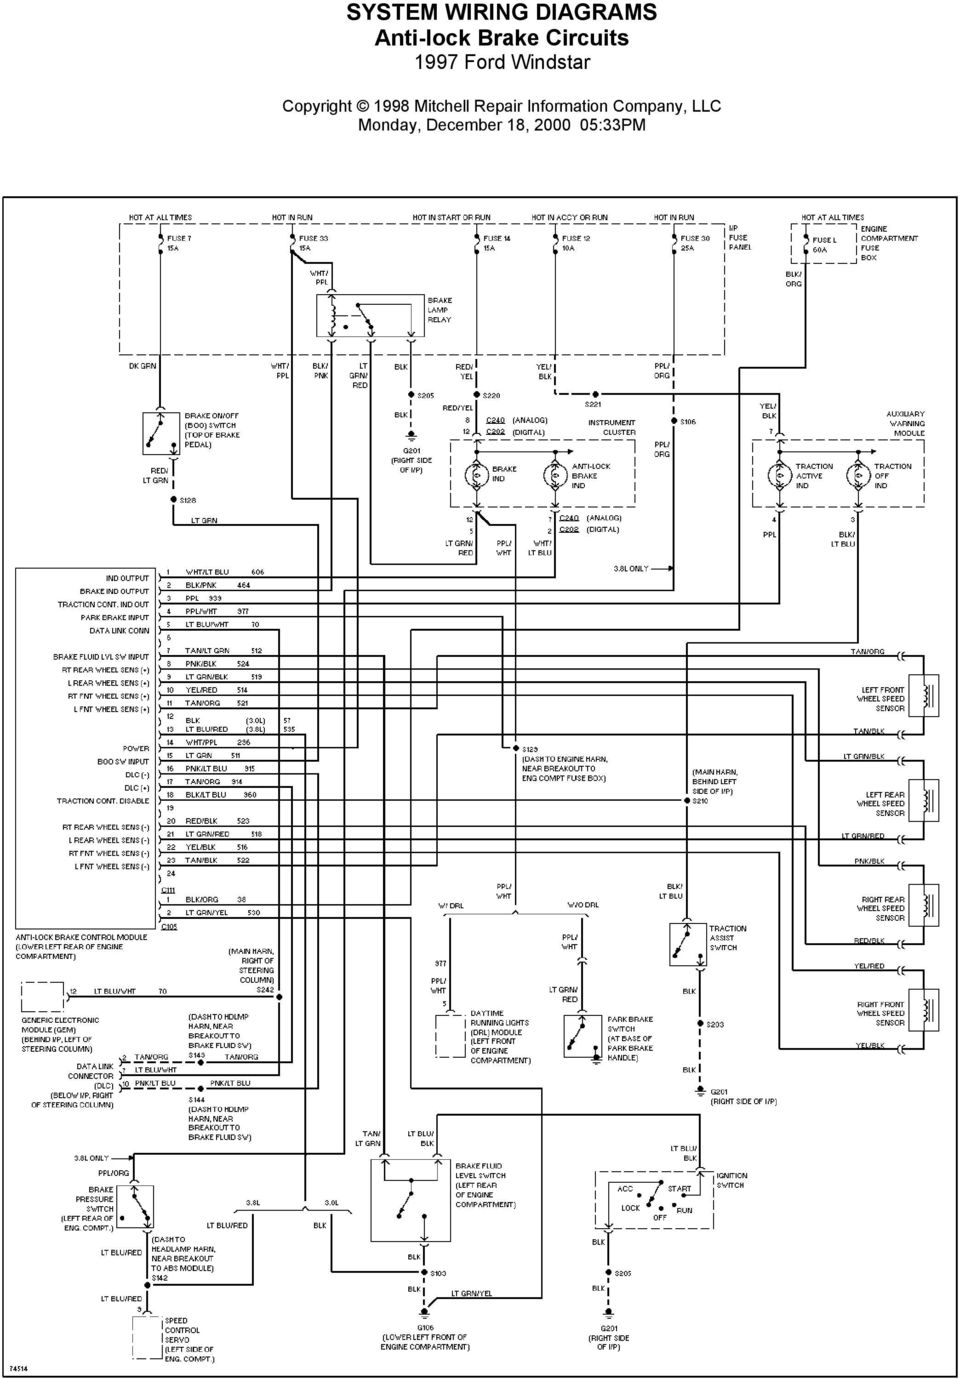 System Wiring Diagrams Air Conditioning Circuits 1997 Ford Windstar Pontiac 2 4 Engine Diagram Ac Low Port Monday